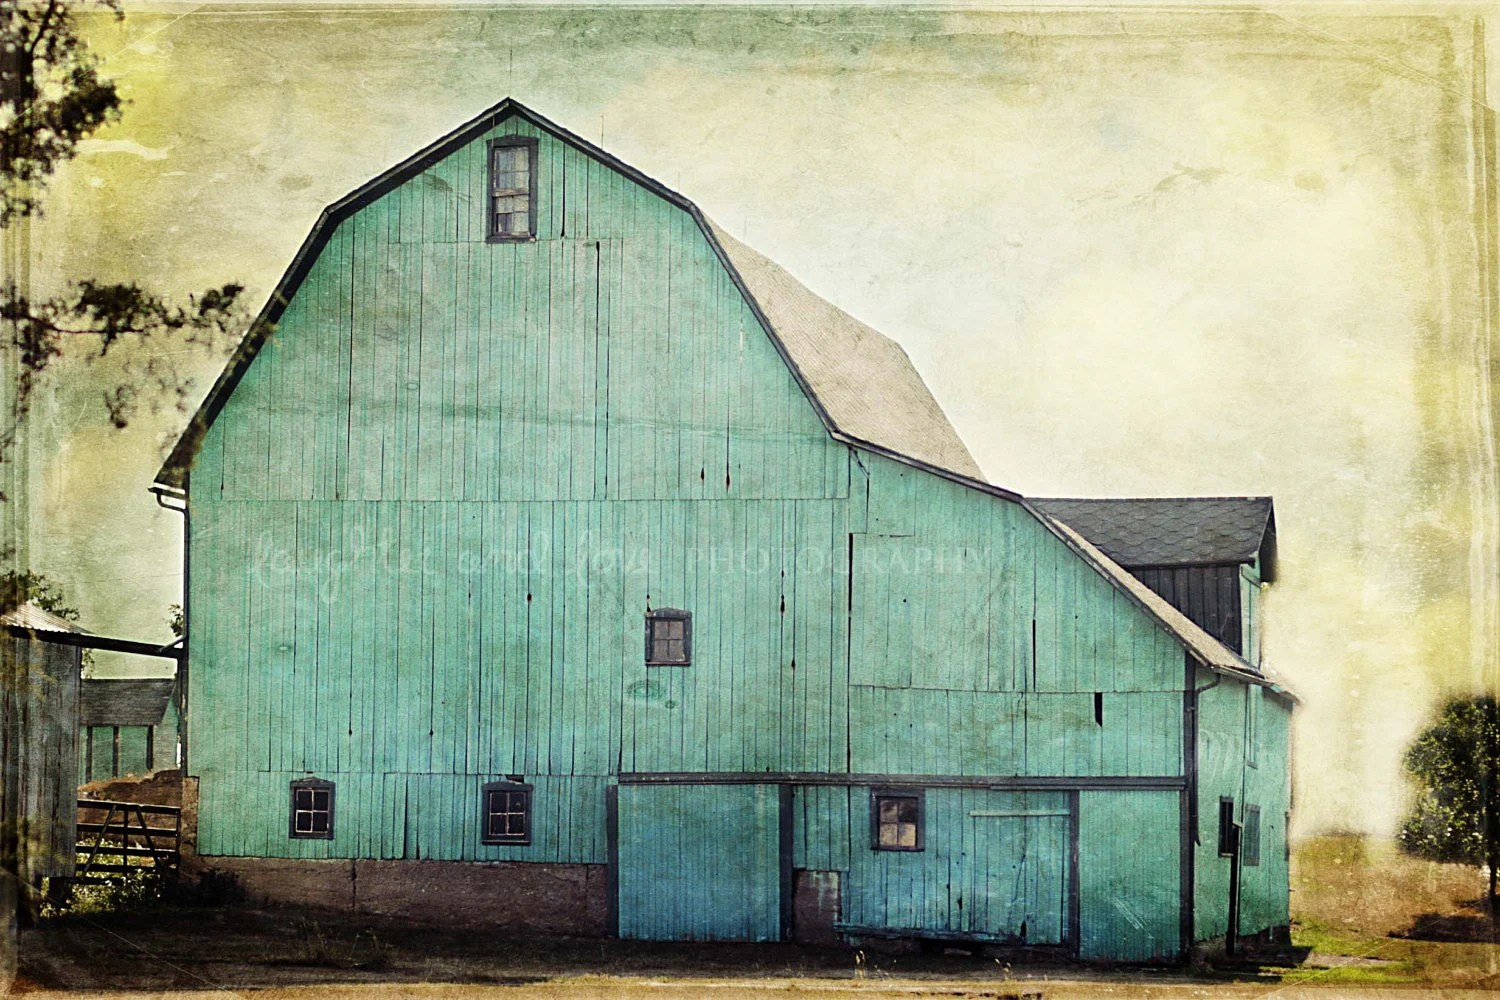 Aqua Barn 8x12 Fine Art Photography Farm Country Shabby Chic Green Blue Rustic Vintage Home Decor Wall Art - laughlovephoto